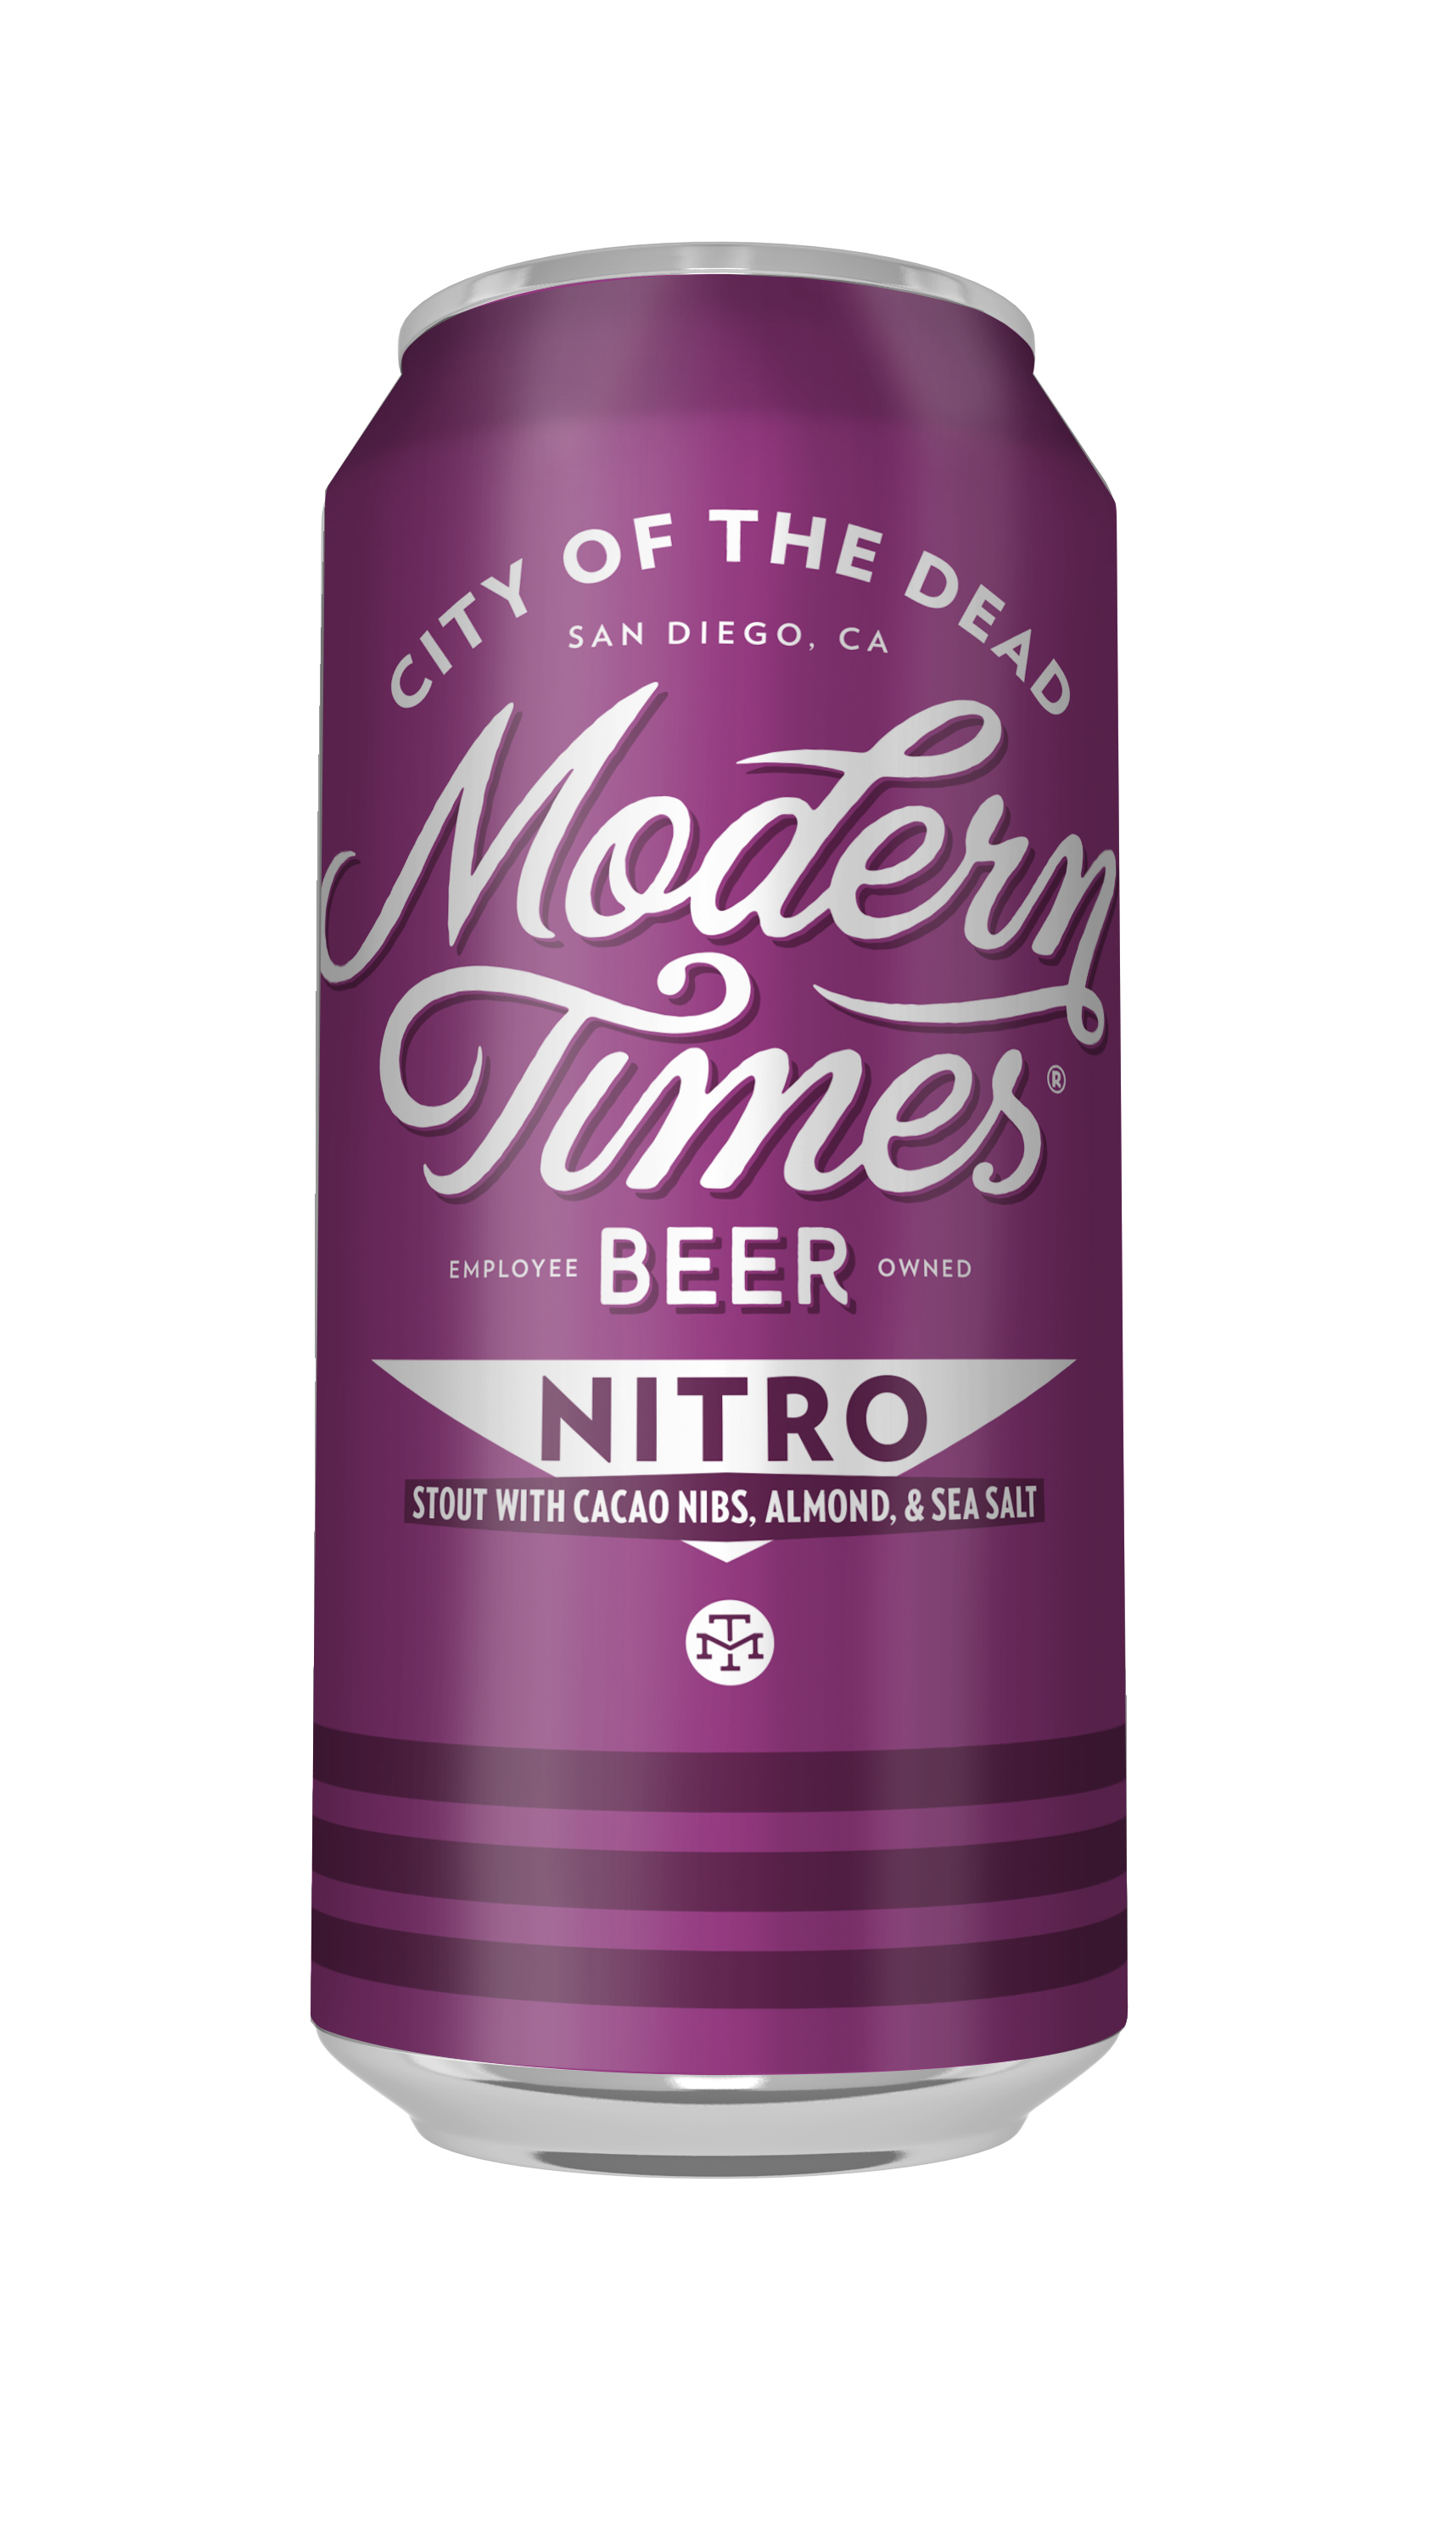 Nitro City of the Dead with Cacao Nibs, Almonds, & Sea Salt